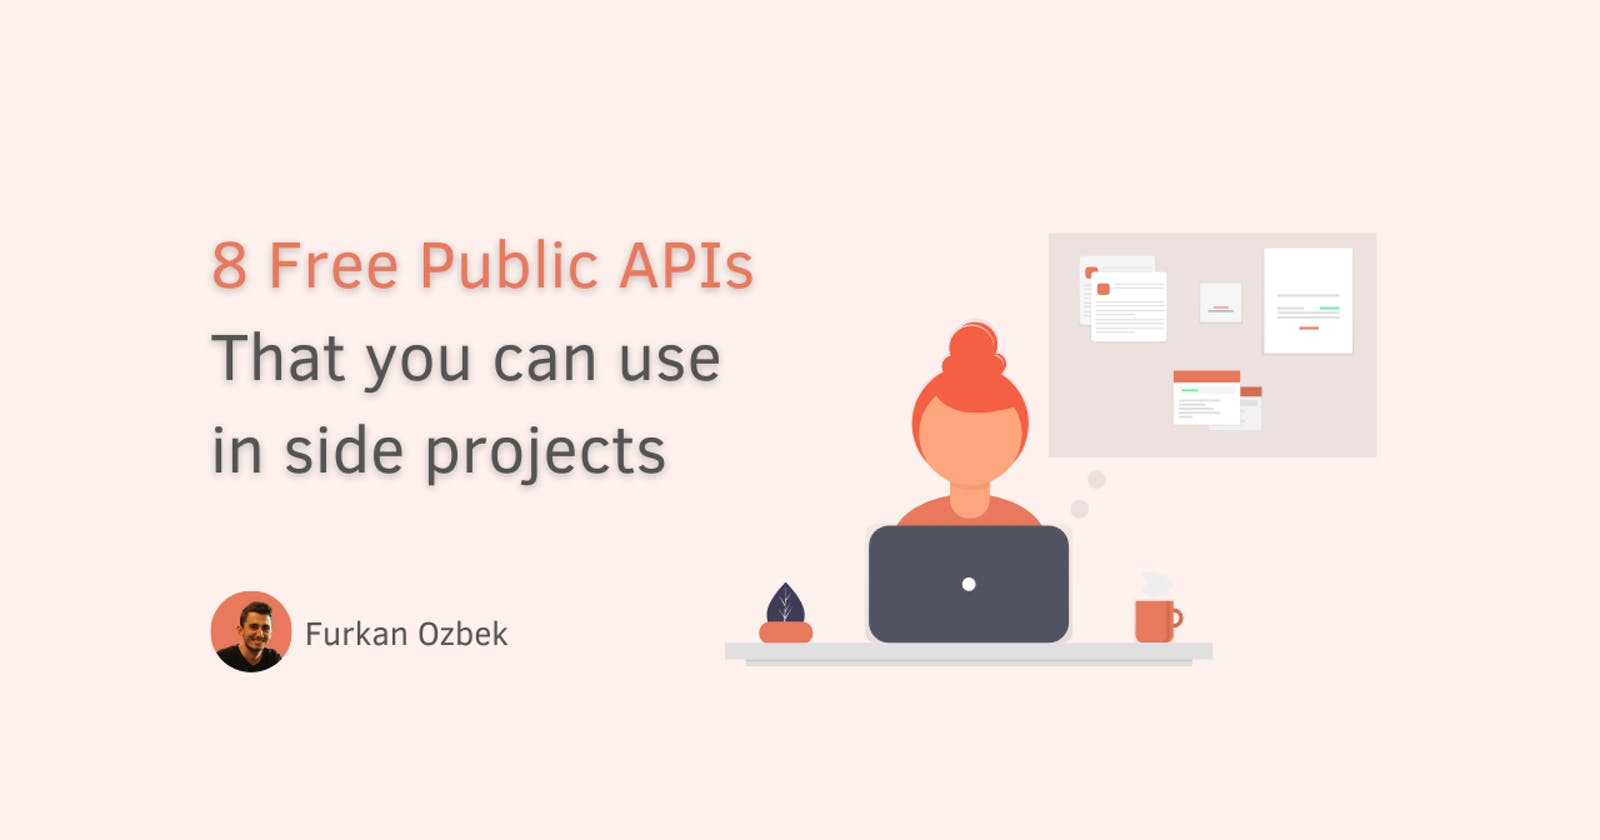 8 Free Public APIs That you can use in side projects